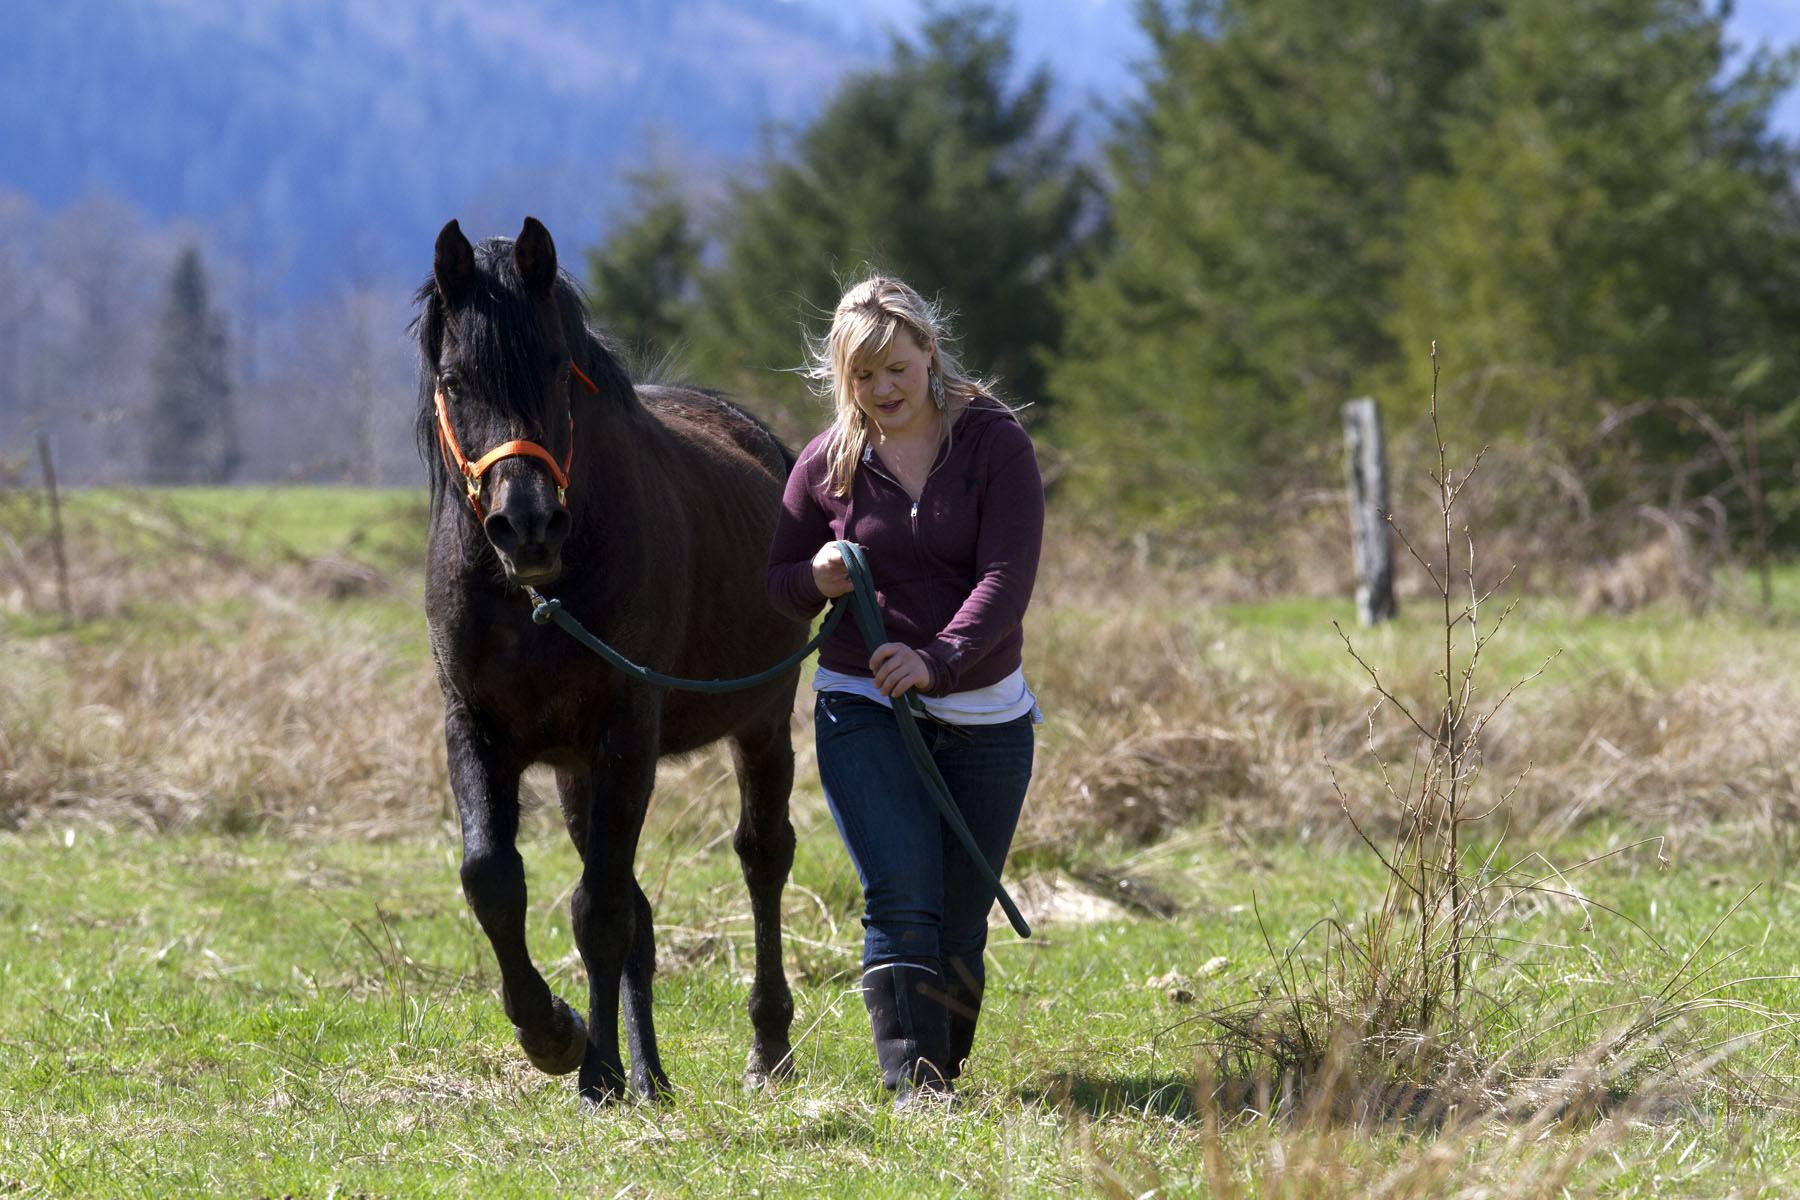 """Alexis Blakey, age 19, from Oso Wash. walks with a stallion on Summer Raffo's farm in Oso, Wash. on April 1, 2014.  Blakey was a friend Raffo and headed to her farm immediately after hearing Raffo was missing after the mudslide on March 22, 2014.  She has been caring for the 16 horses daily since.   """"This was her life,"""" said Blakey.  """"She loved horses and loved caring for them.  I'm really going to miss her."""""""